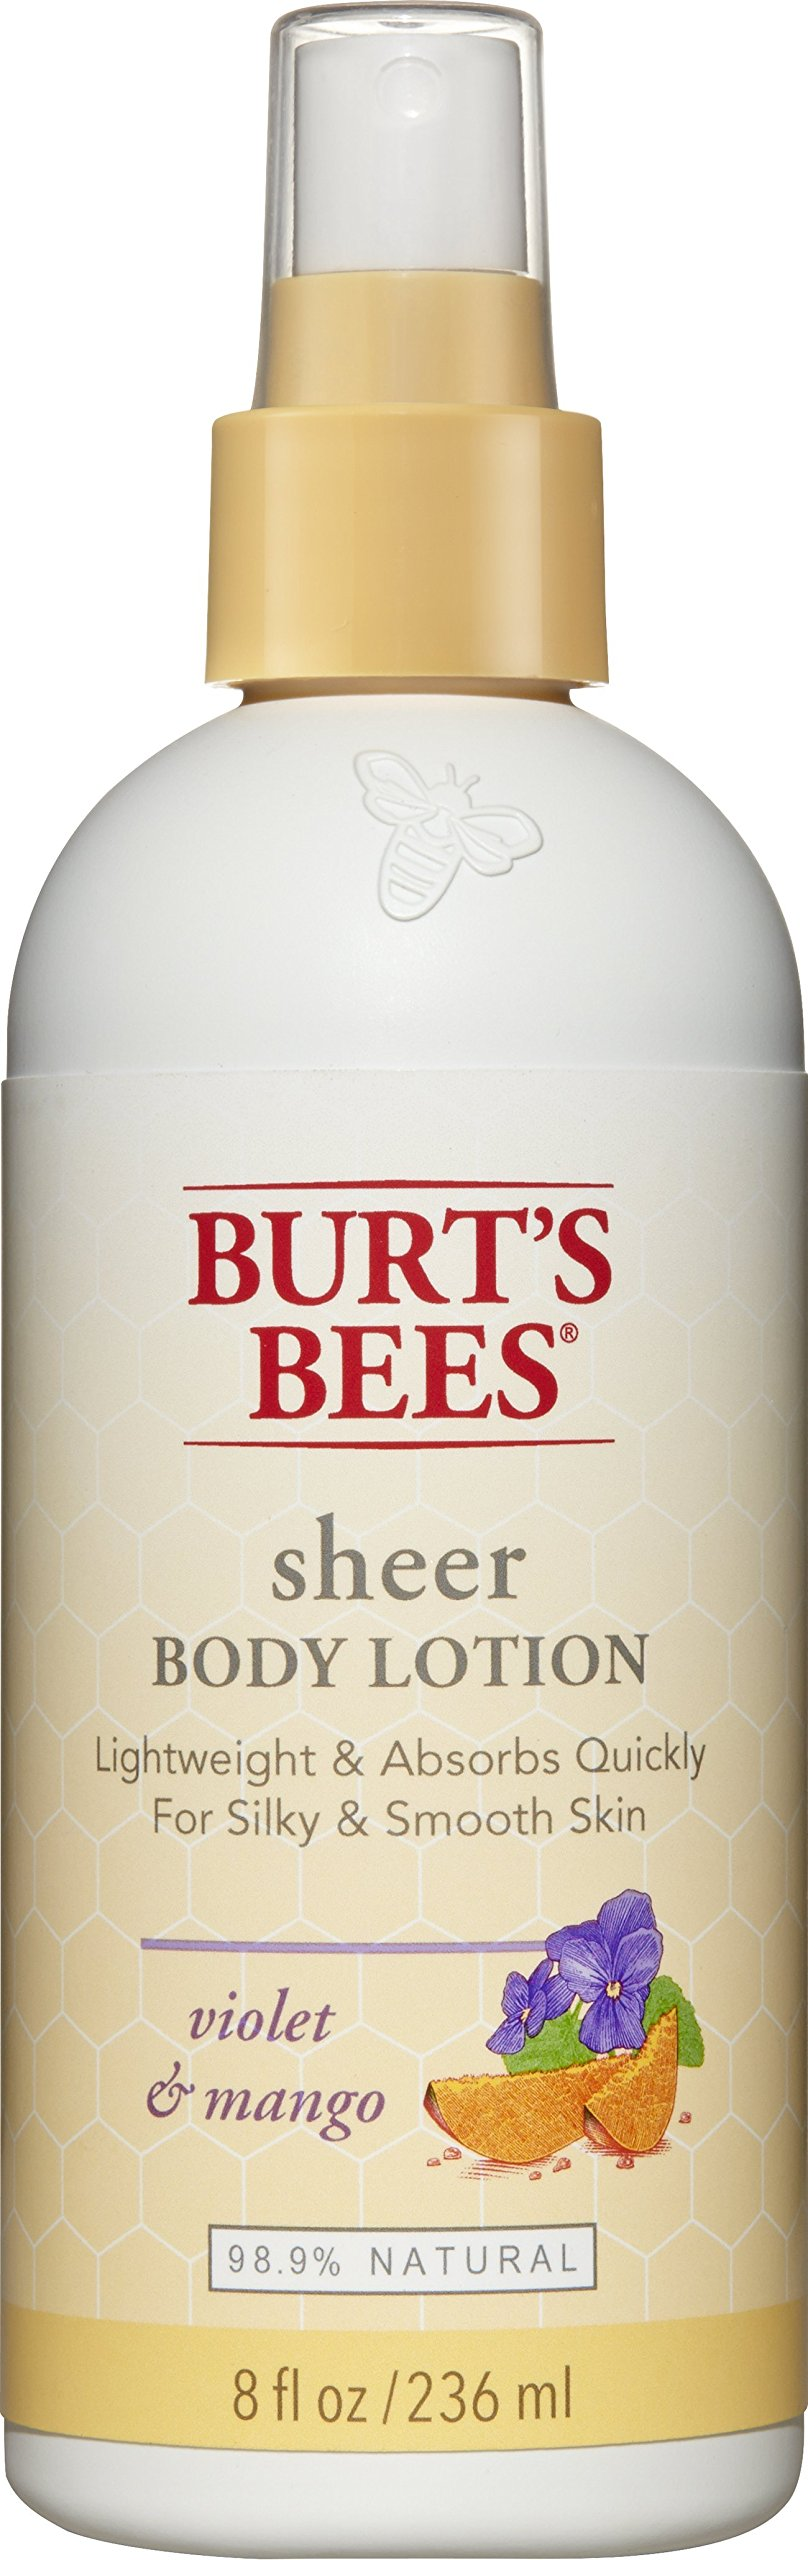 Burt's Bees Sheer Body Lotion, Violet and Mango, 8 Fluid Ounces (Pack of 3) by Burt's Bees